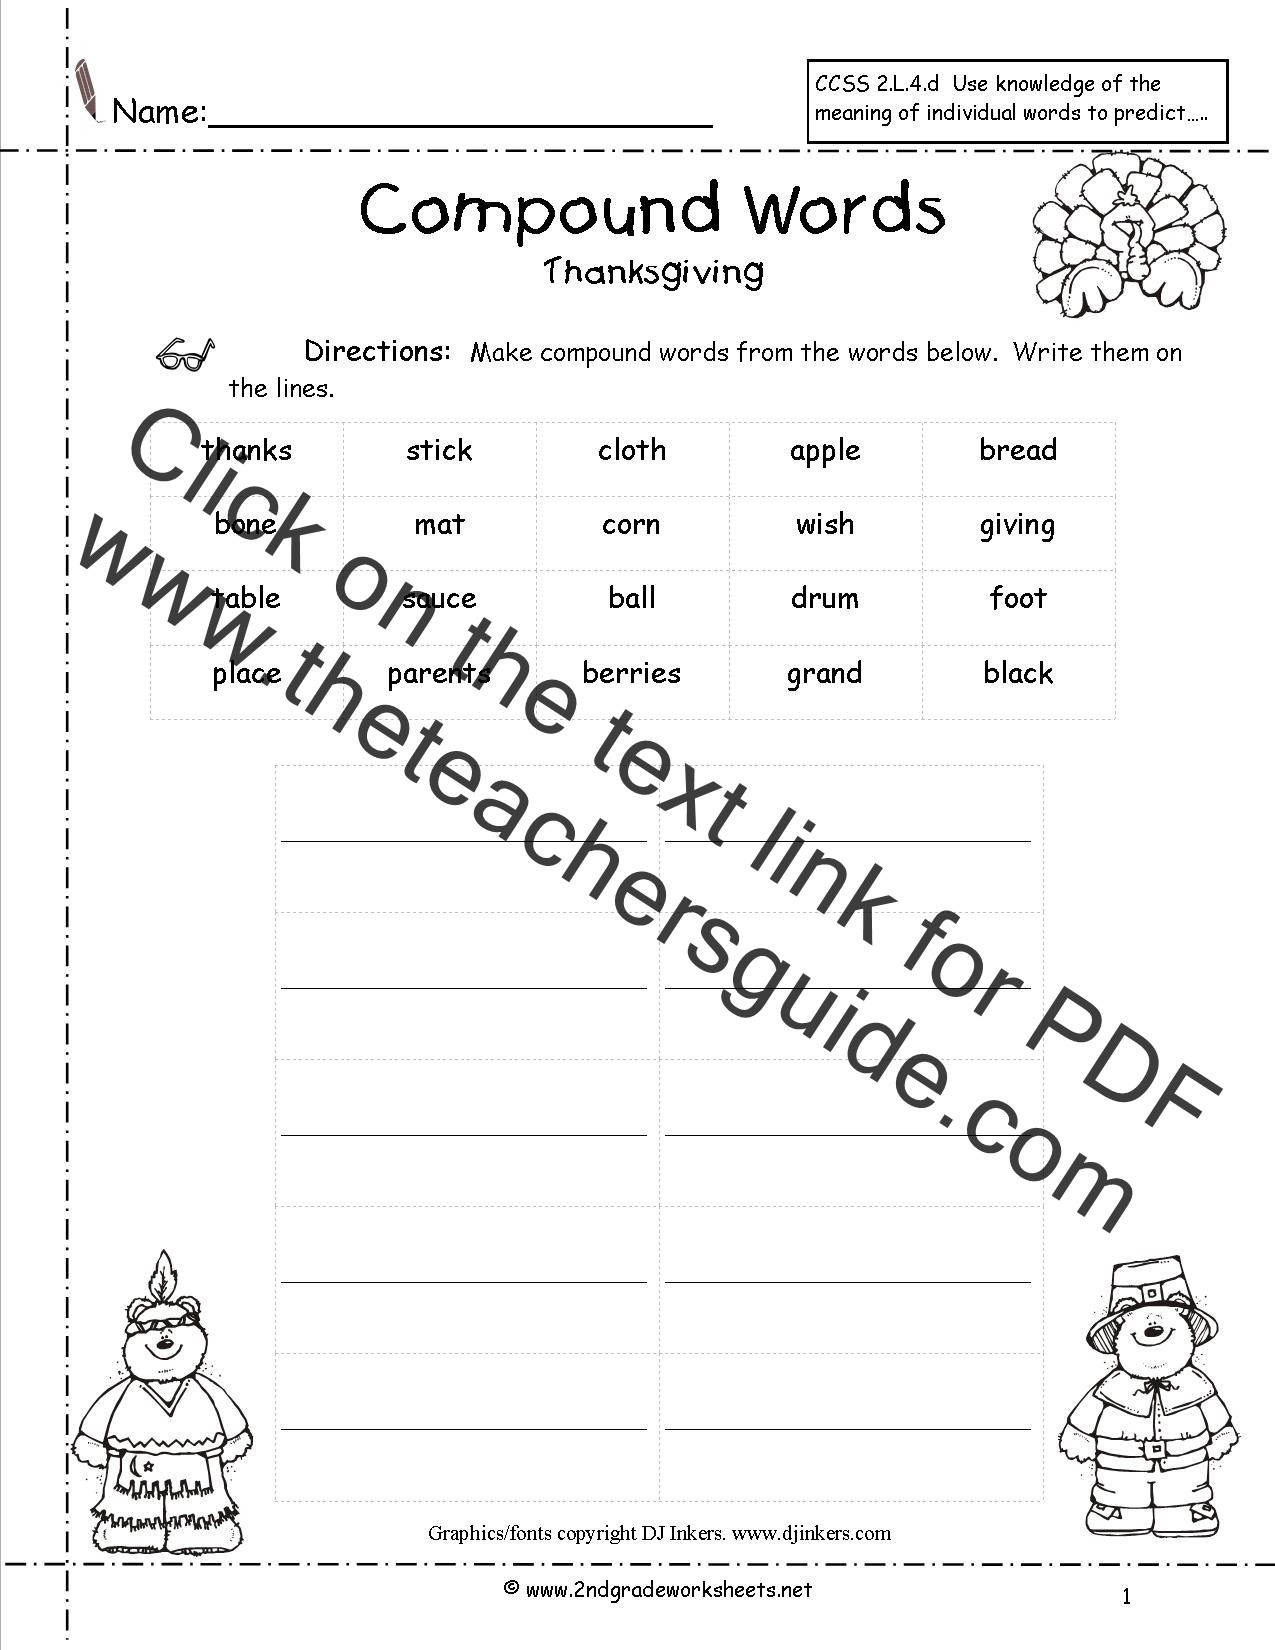 Thanksgiving Math Worksheets Middle School Thanksgiving Printouts and Worksheets Free Math for Second